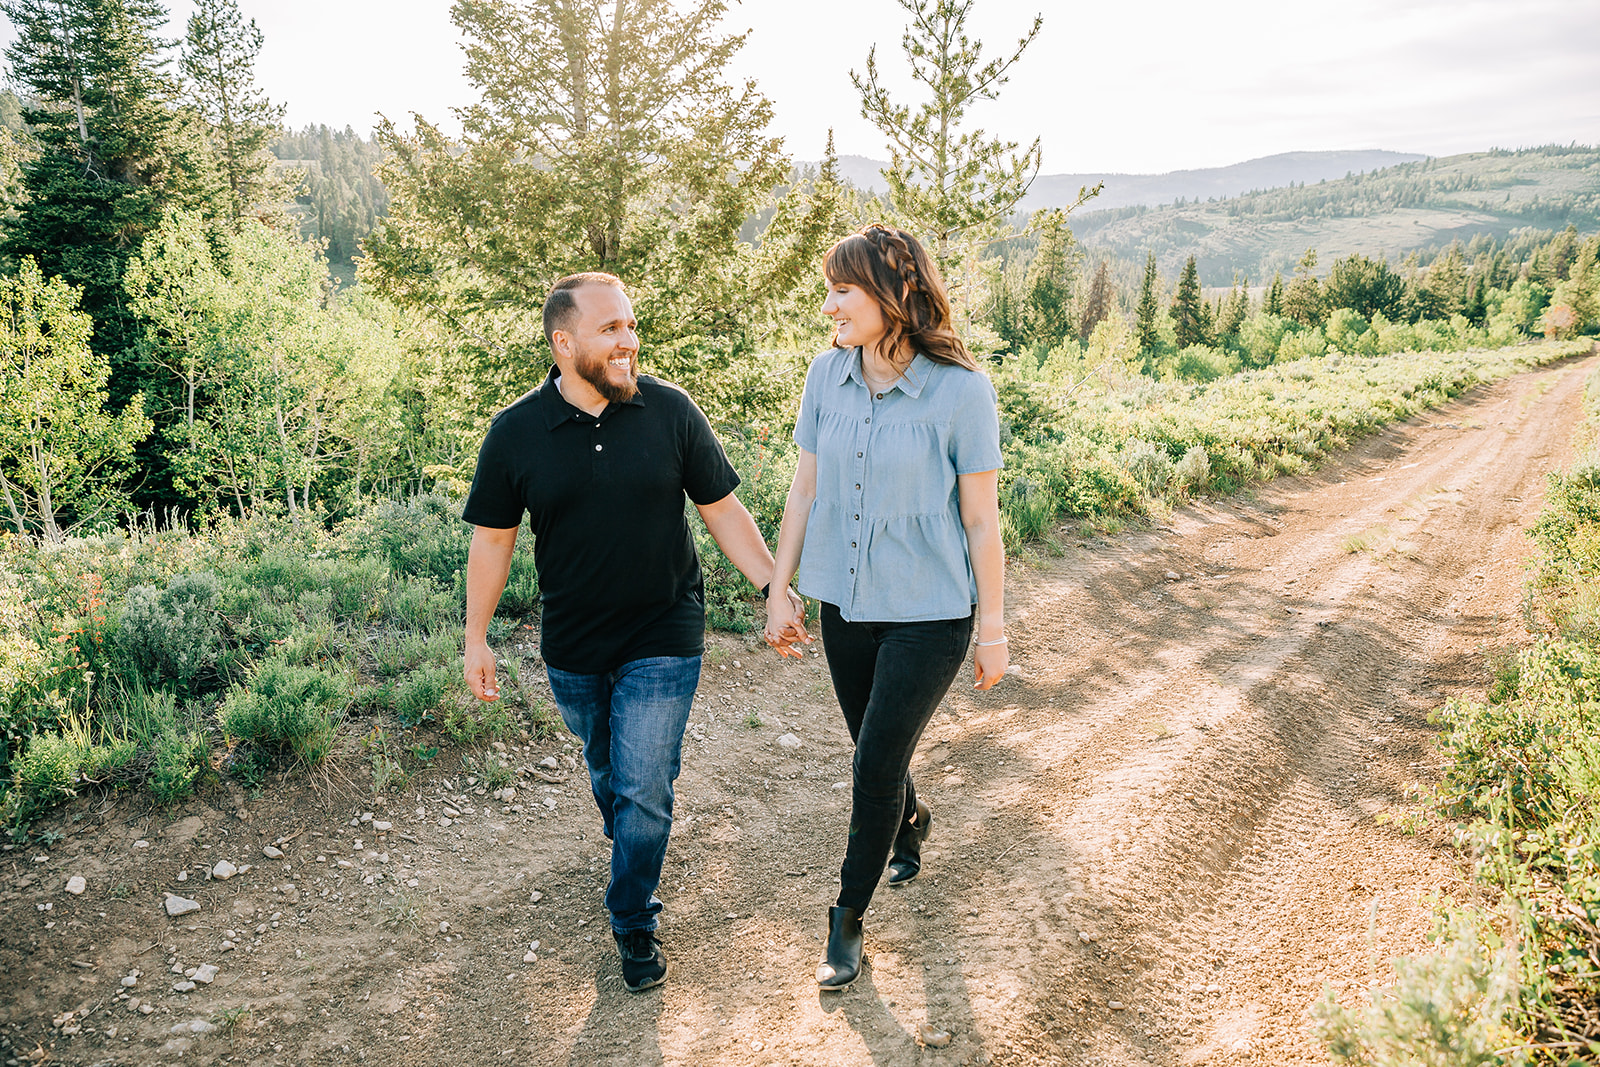 Engagement outfit inspo walking on a trail in the mountains Logan, Utah engagement photographer Bella Alder Photography engagements for an upcoming utah wedding #bellaalderphoto #engagements #utahengagements #engagementphotographer #engagementphotography #loganutahengagementphotographer #utahengagements #utahengagementphotographer #mountains #mountainengagements #weddingplanning #utahwedding